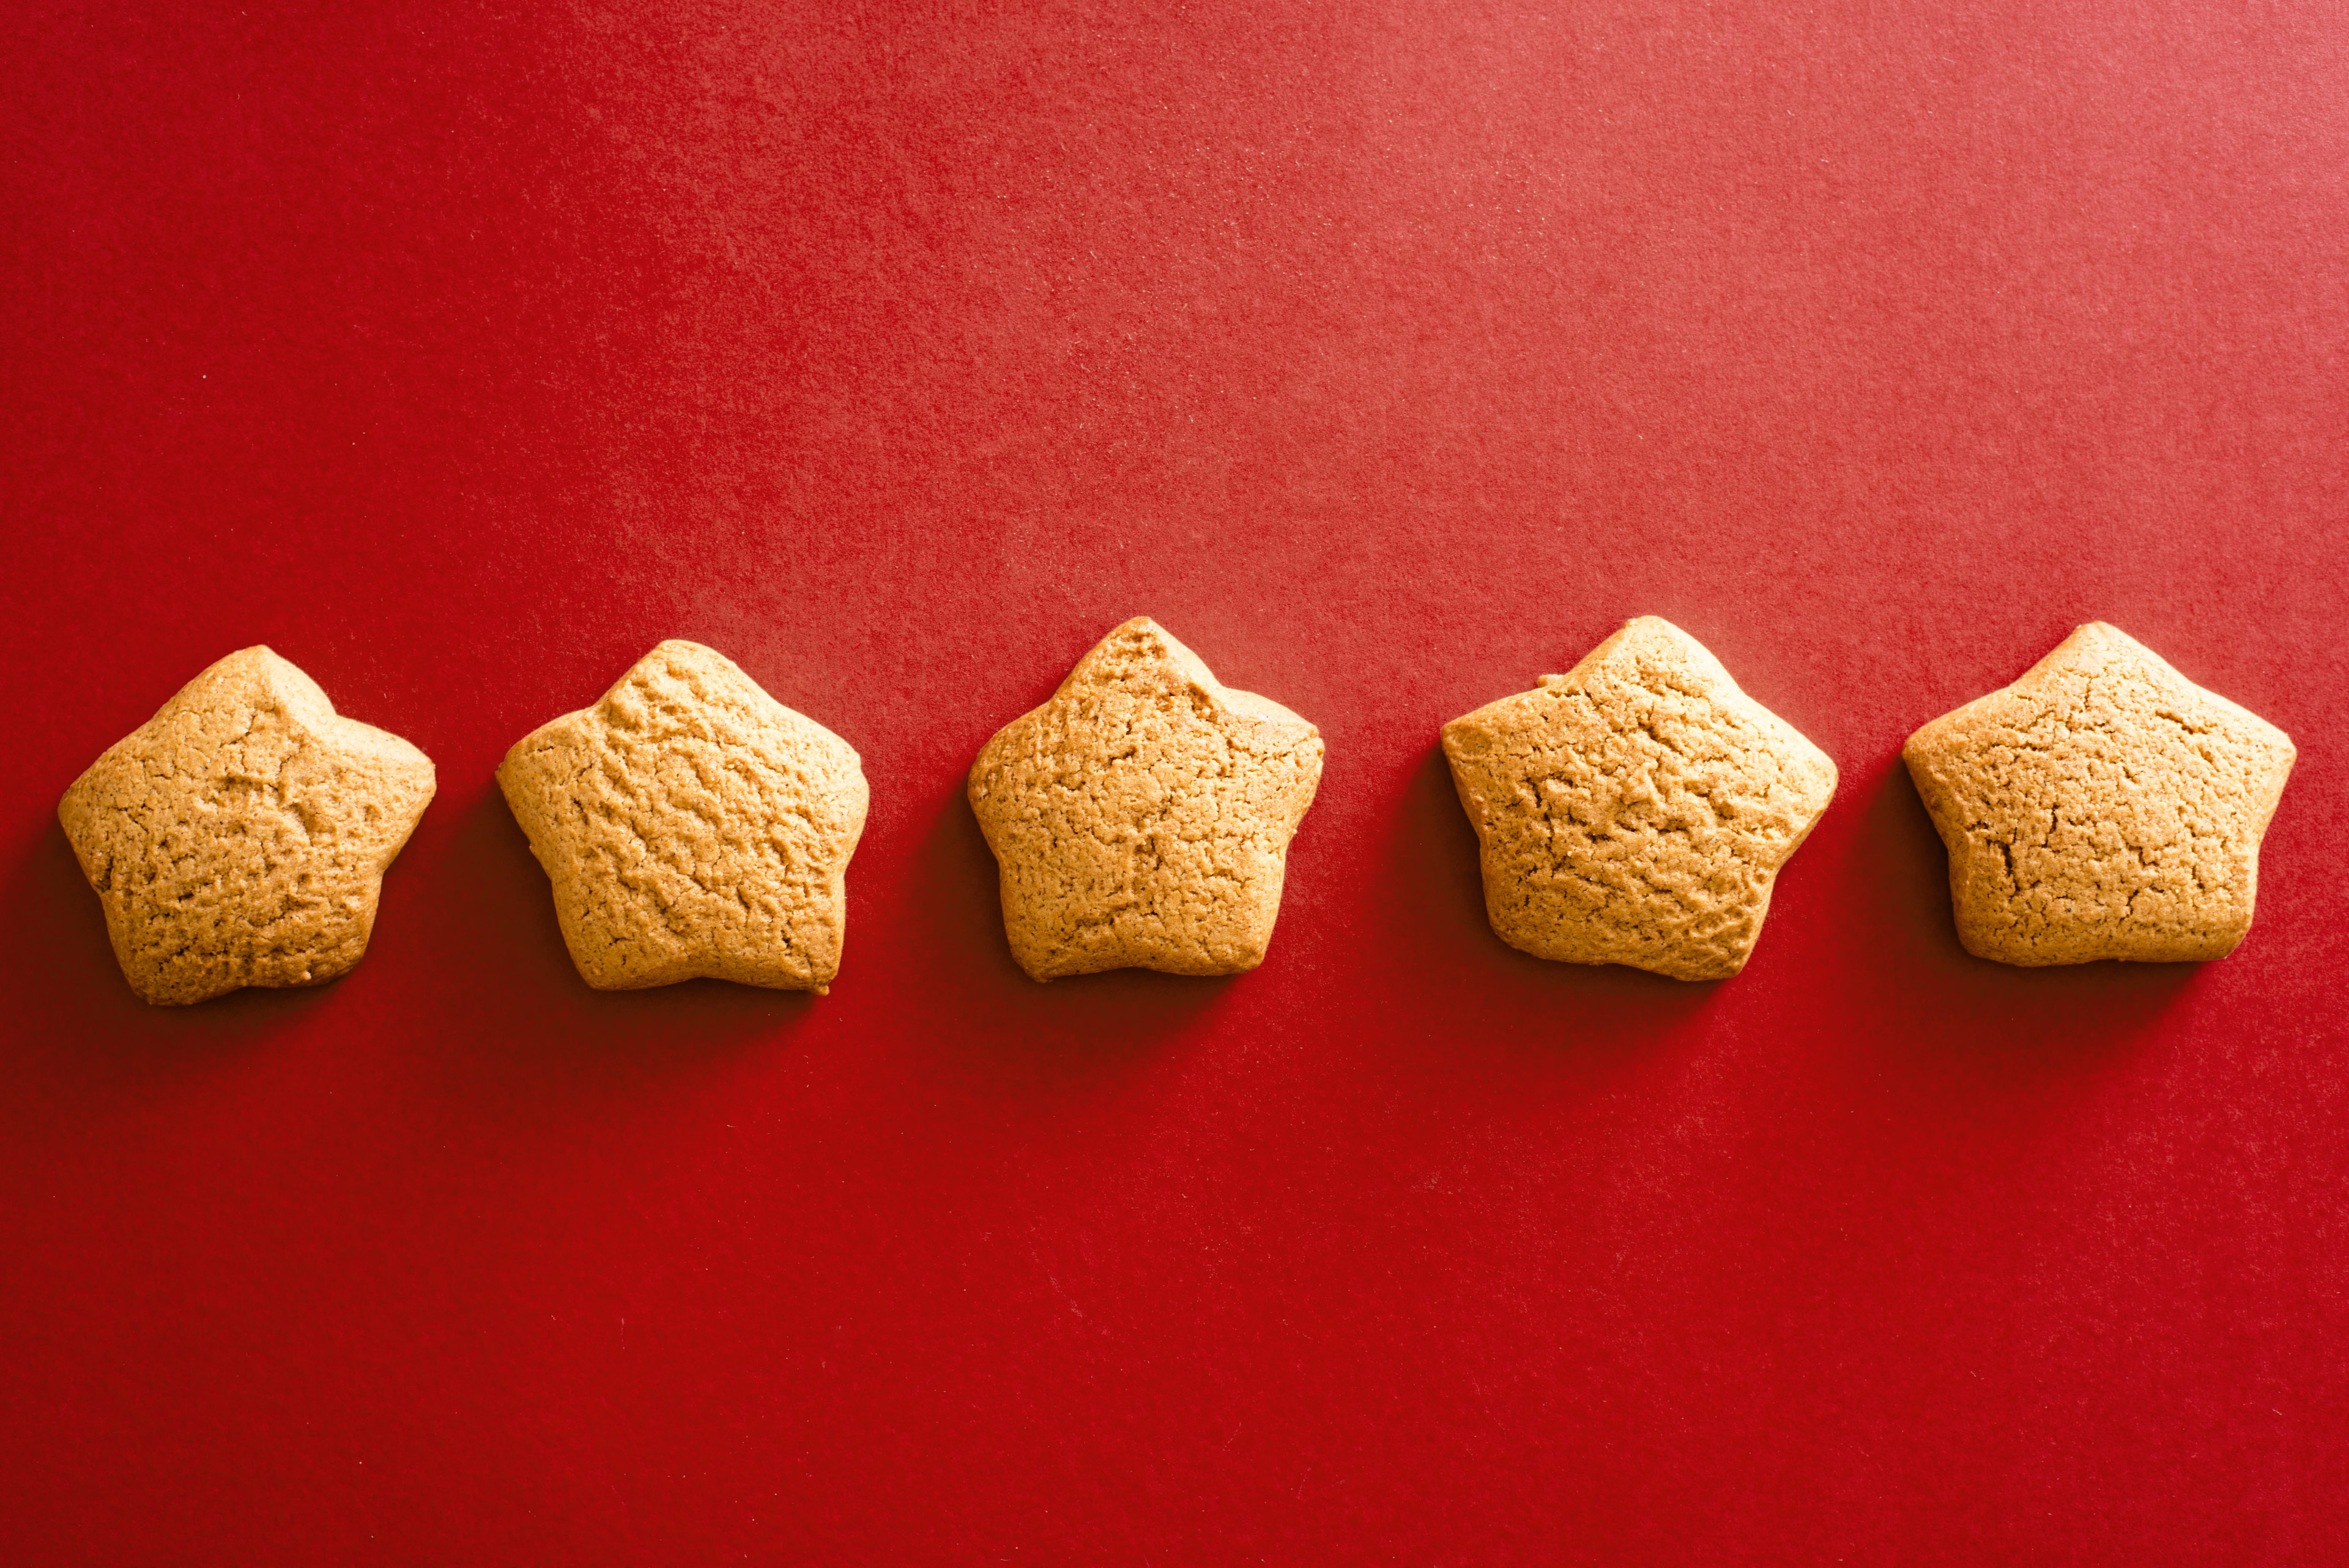 Five home baked star shaped cookies on a plain red background with copy space.